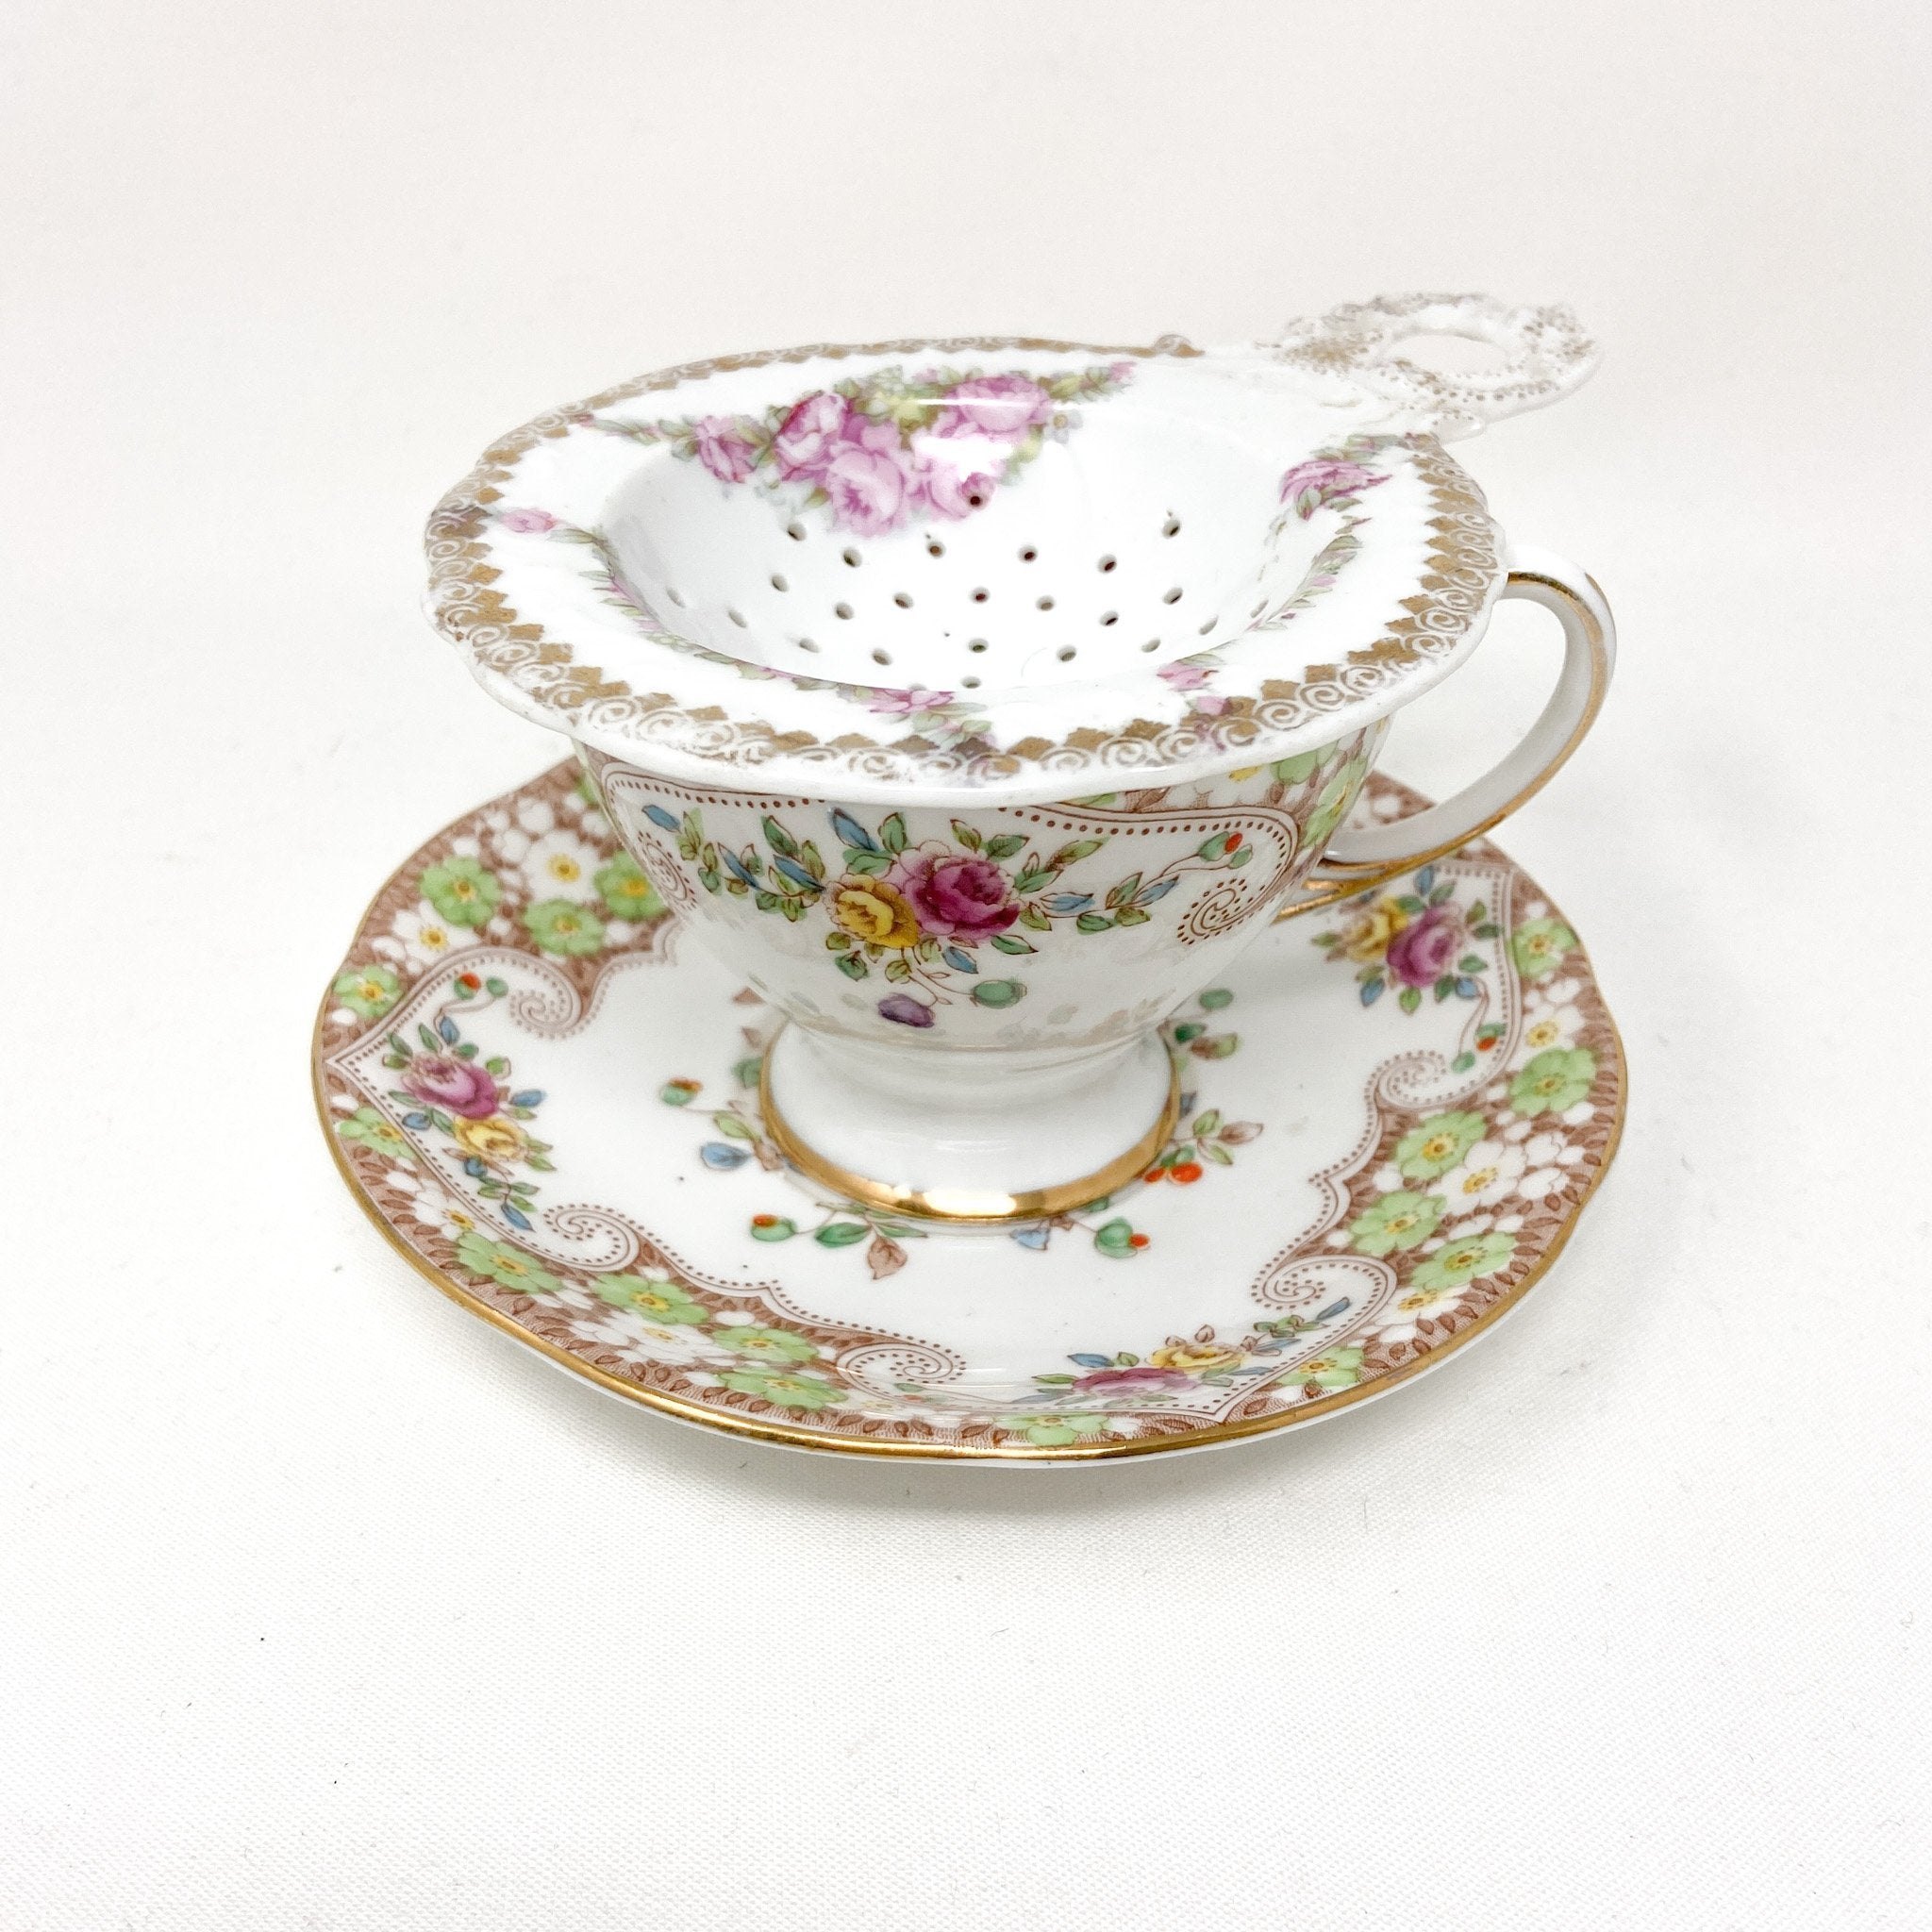 Royal Standard Rosemary | Teacup, Saucer & Strainer | The Brooklyn Teacup - granmillenial, cottagecore